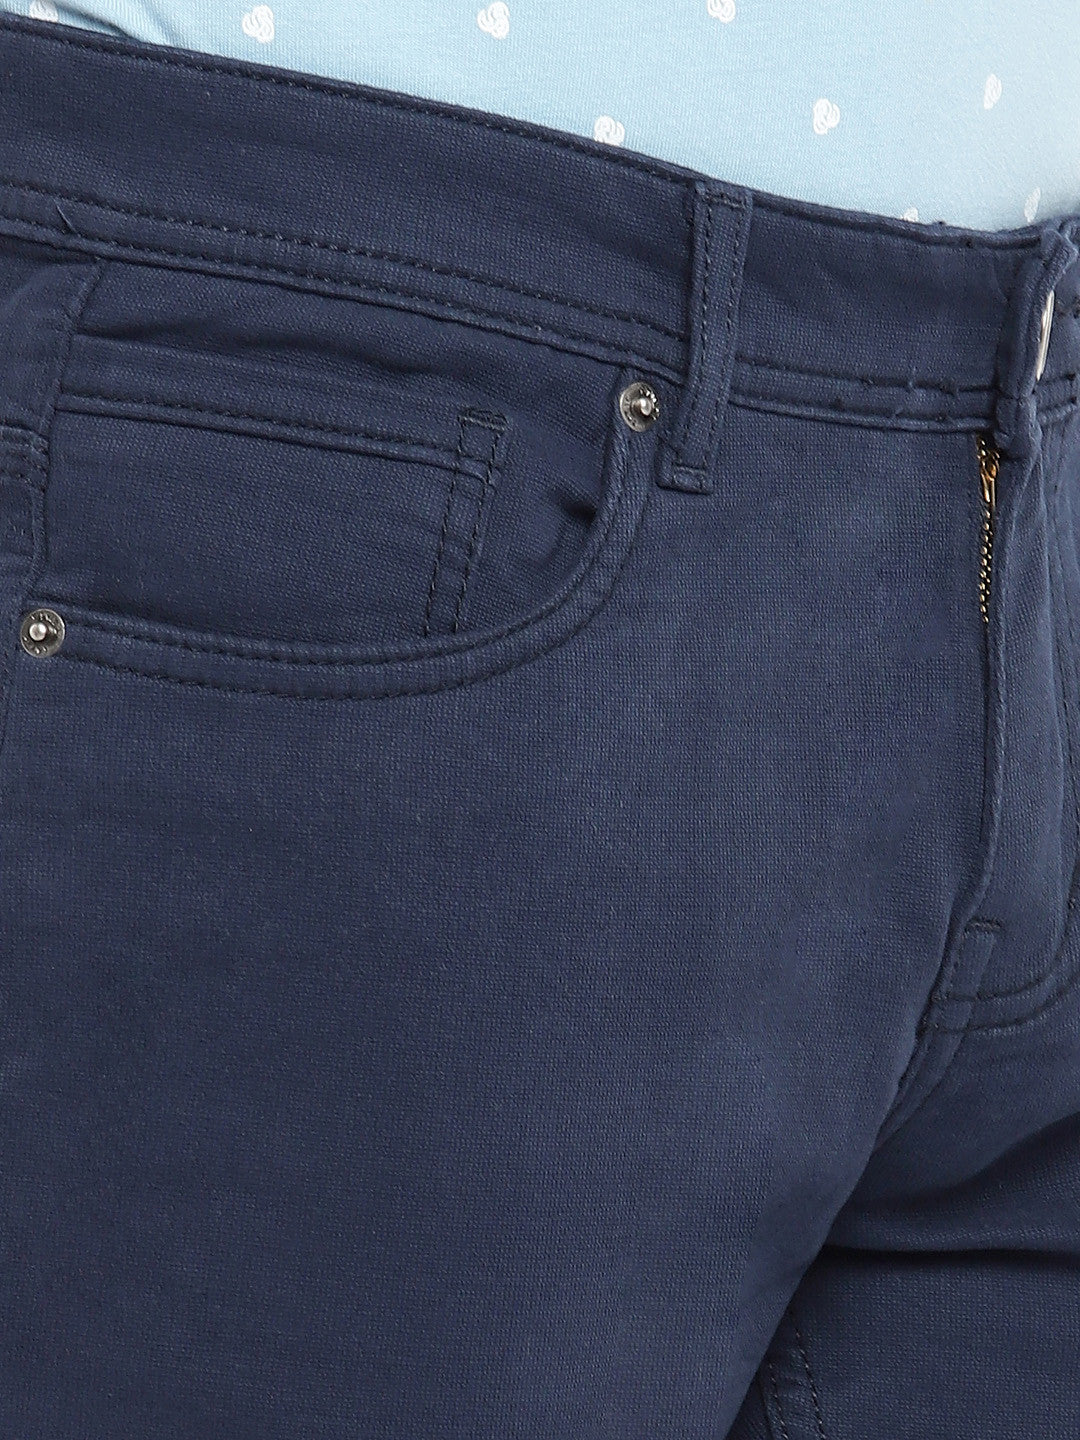 Navy Blue Regular Fit Solid Regular Trousers-5